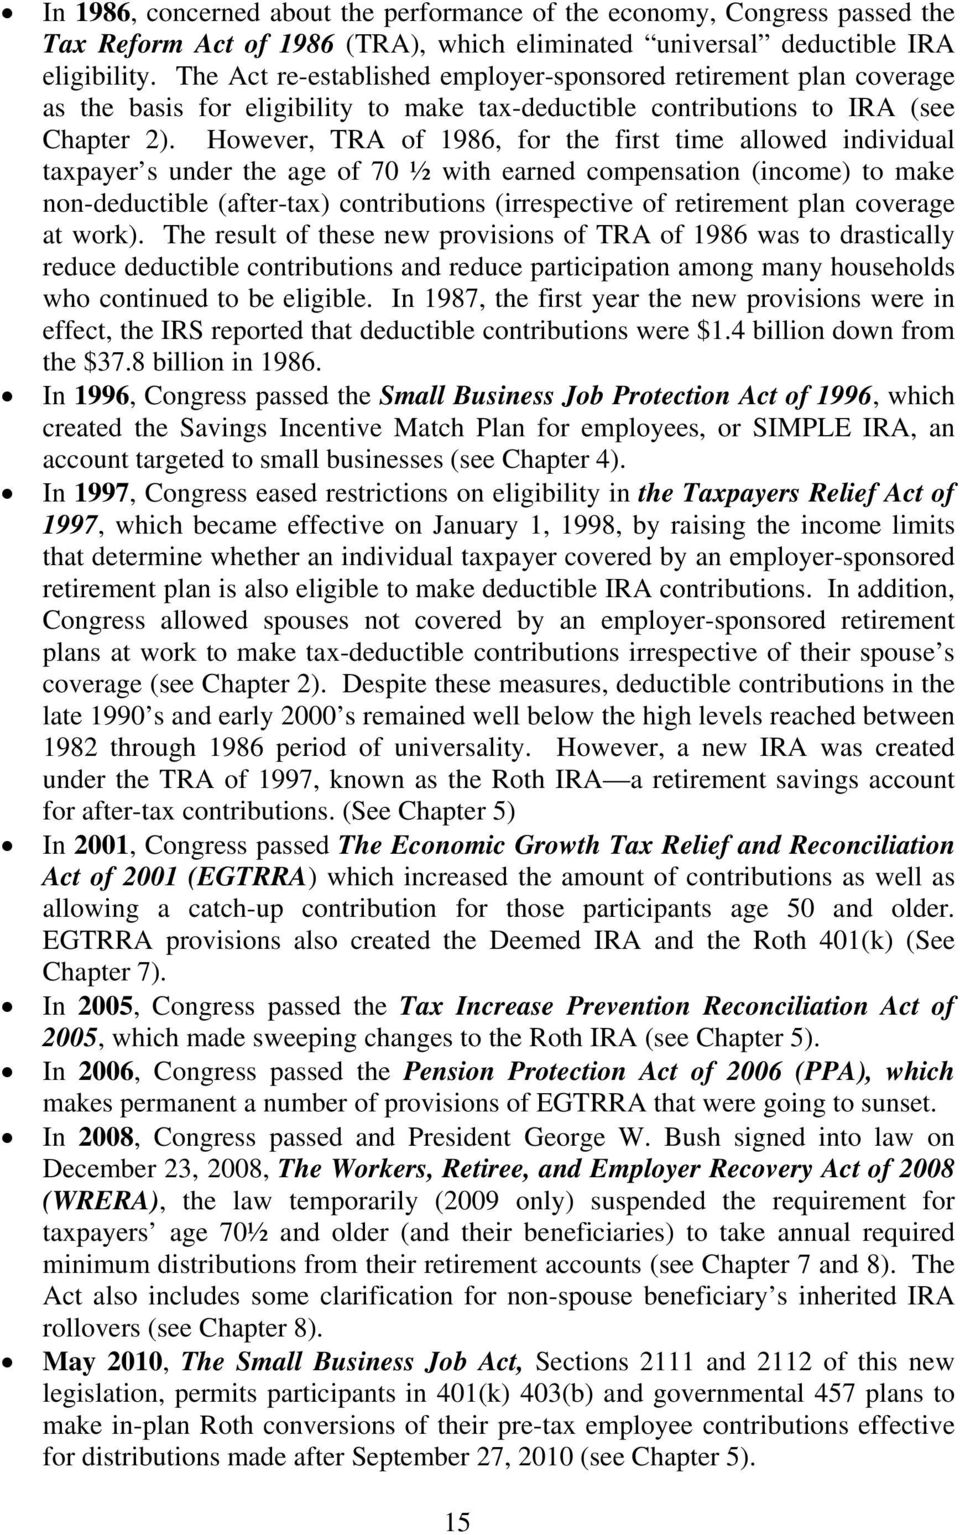 However, TRA of 1986, for the first time allowed individual taxpayer s under the age of 70 ½ with earned compensation (income) to make non-deductible (after-tax) contributions (irrespective of